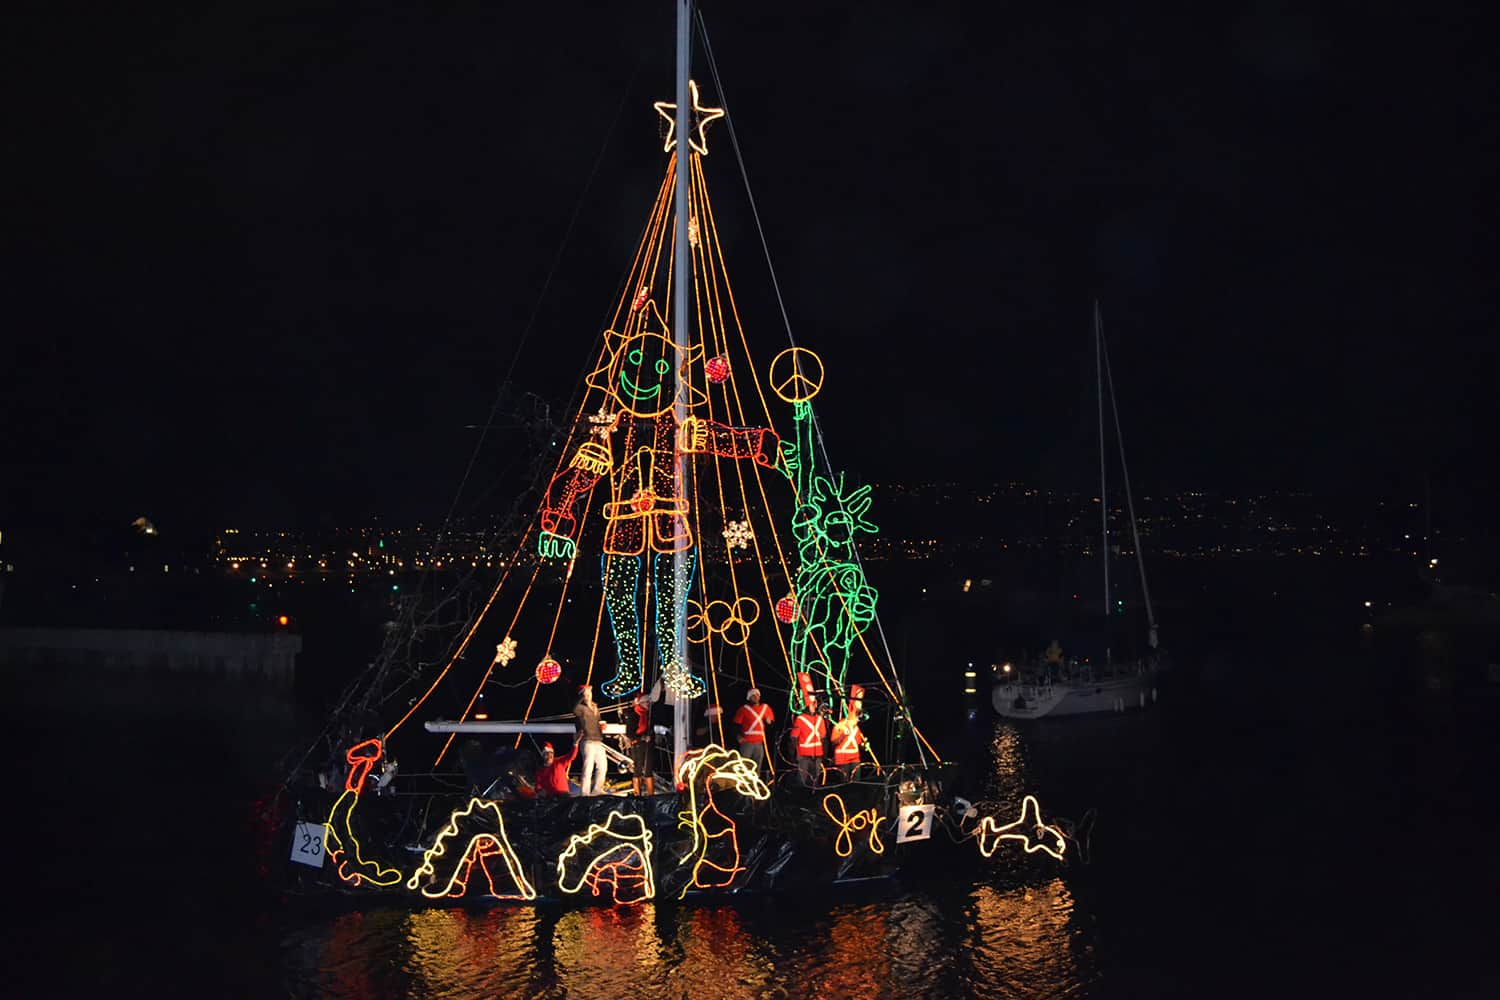 Redondo Beach Holiday Boat Parade